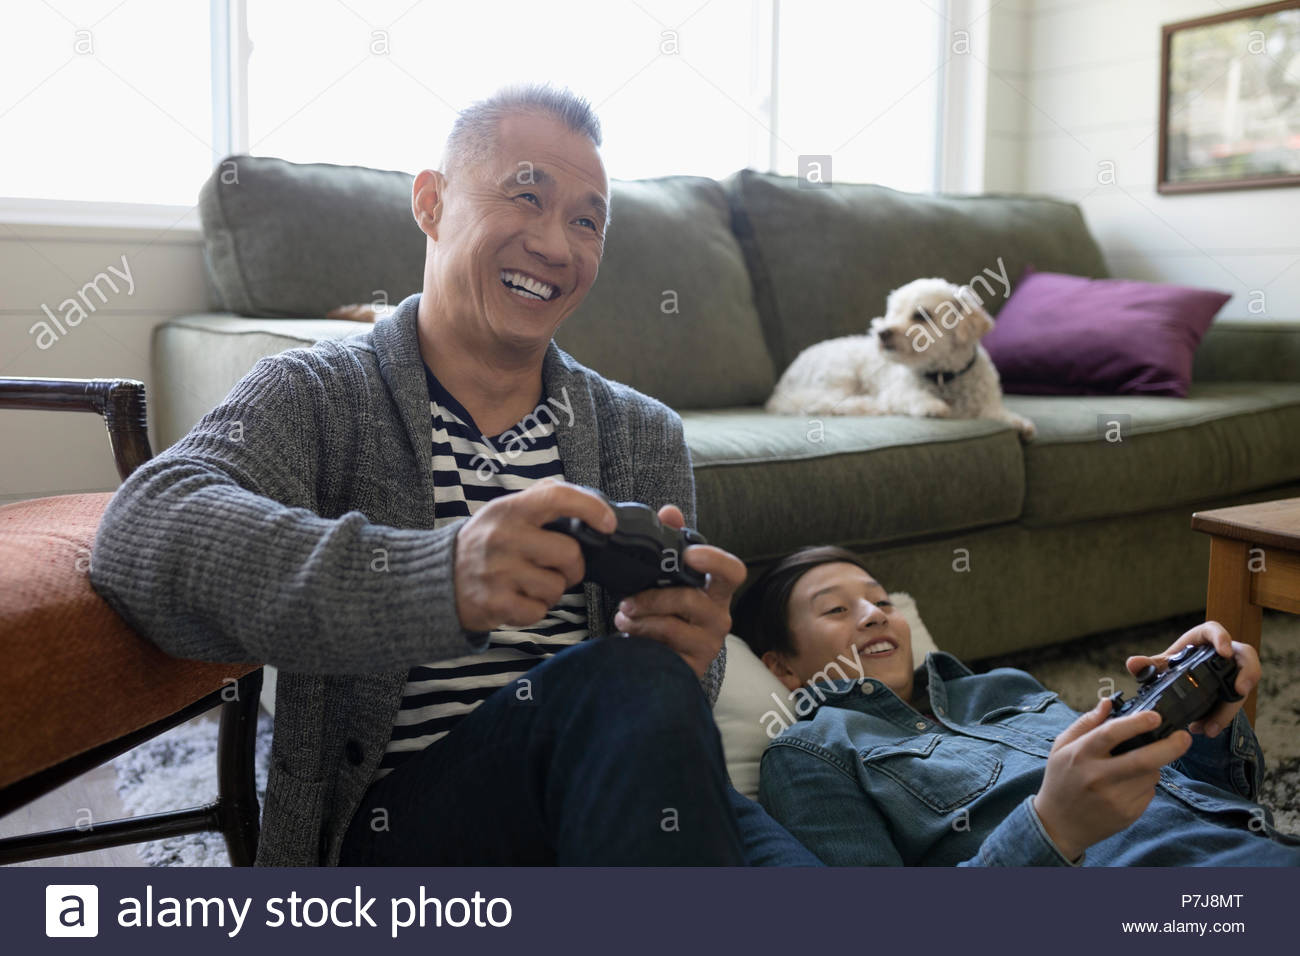 Chien regardant happy father and son playing video game in living room Photo Stock